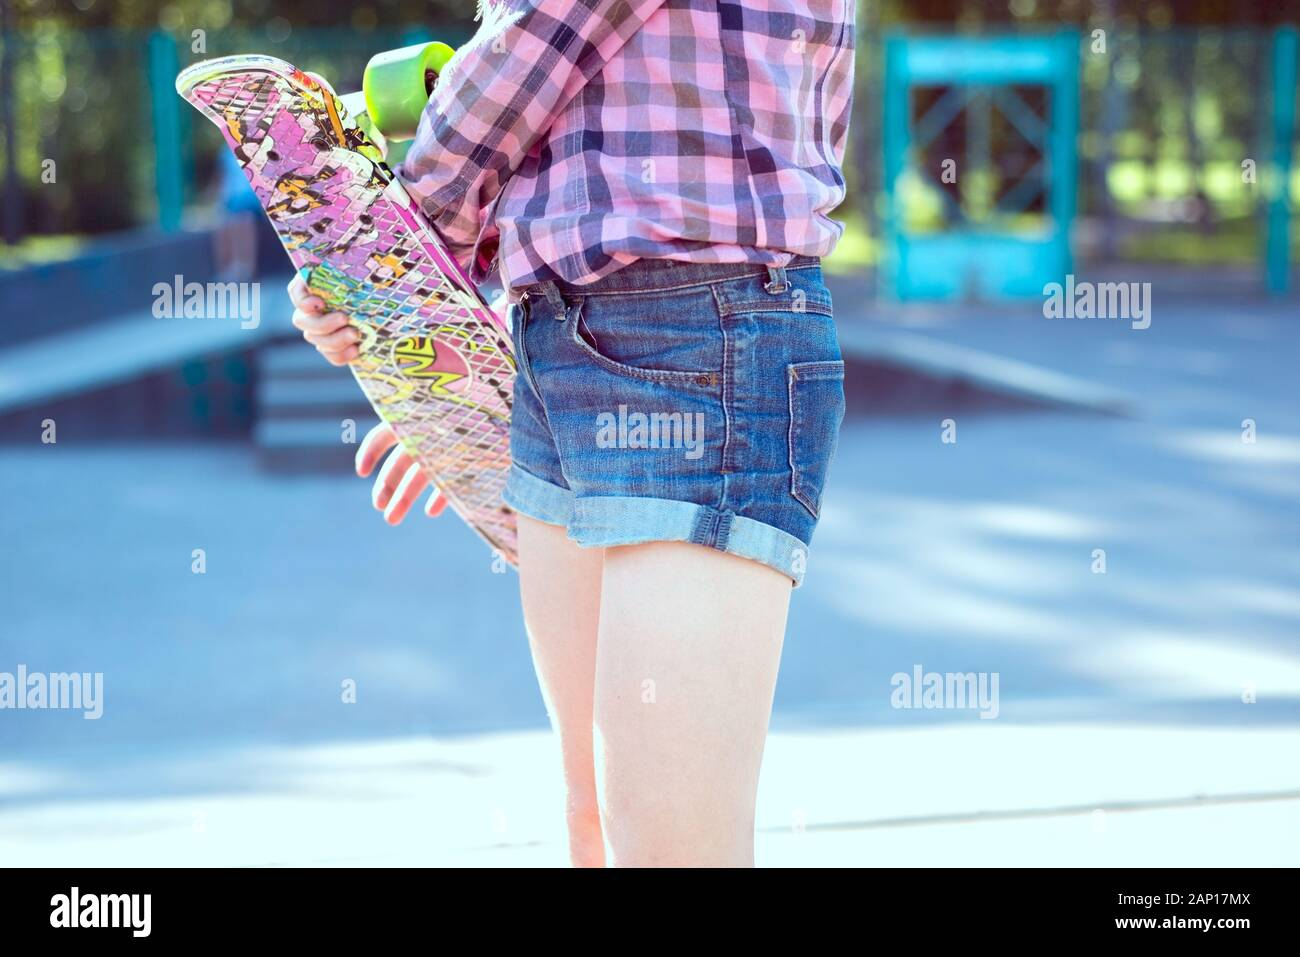 portrait of a little girl, in a plaid shirt, standing with a skateboard, on the playground. Teen girl smiling. Active kids lifestyle Stock Photo